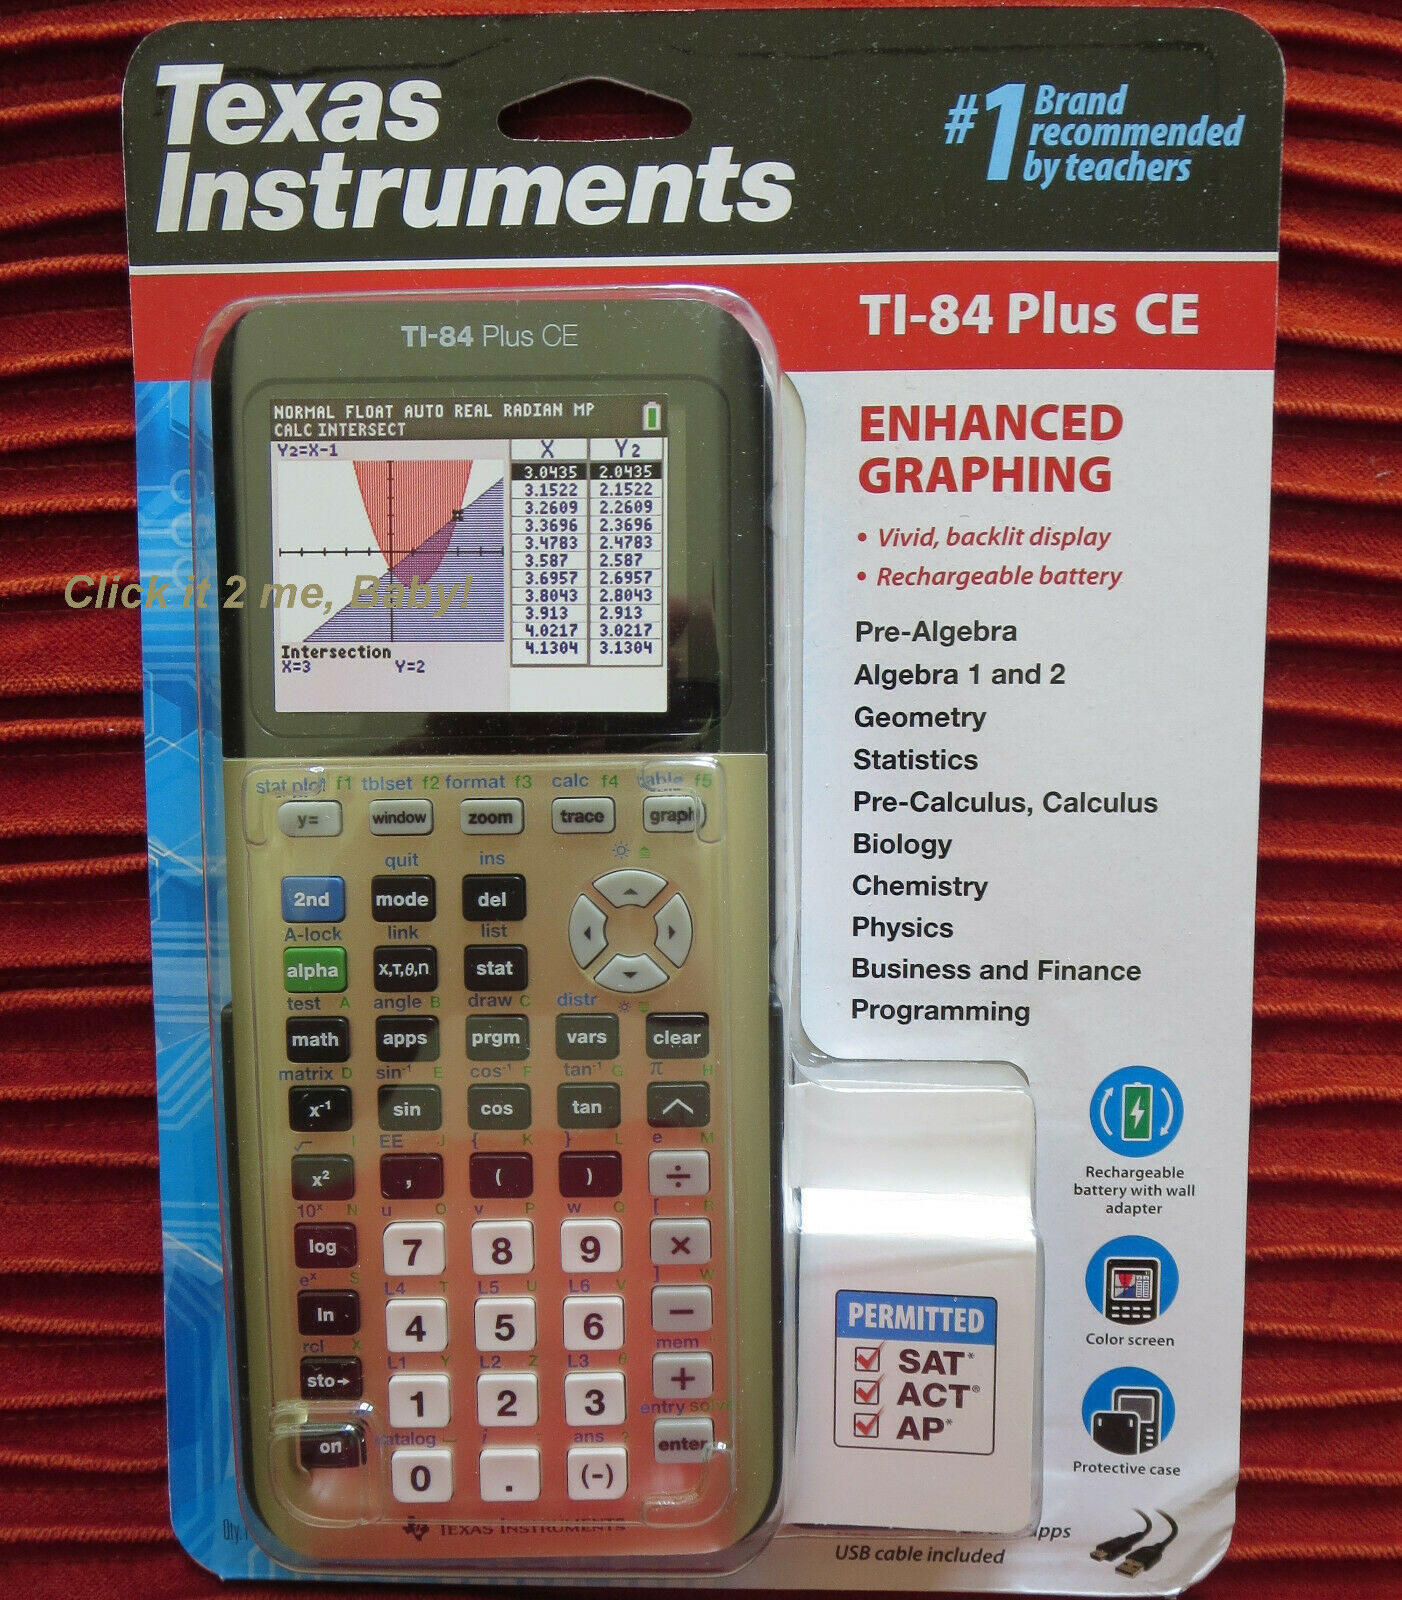 Texas Instruments TI-84 Plus CE Graphing Calculator - Impact